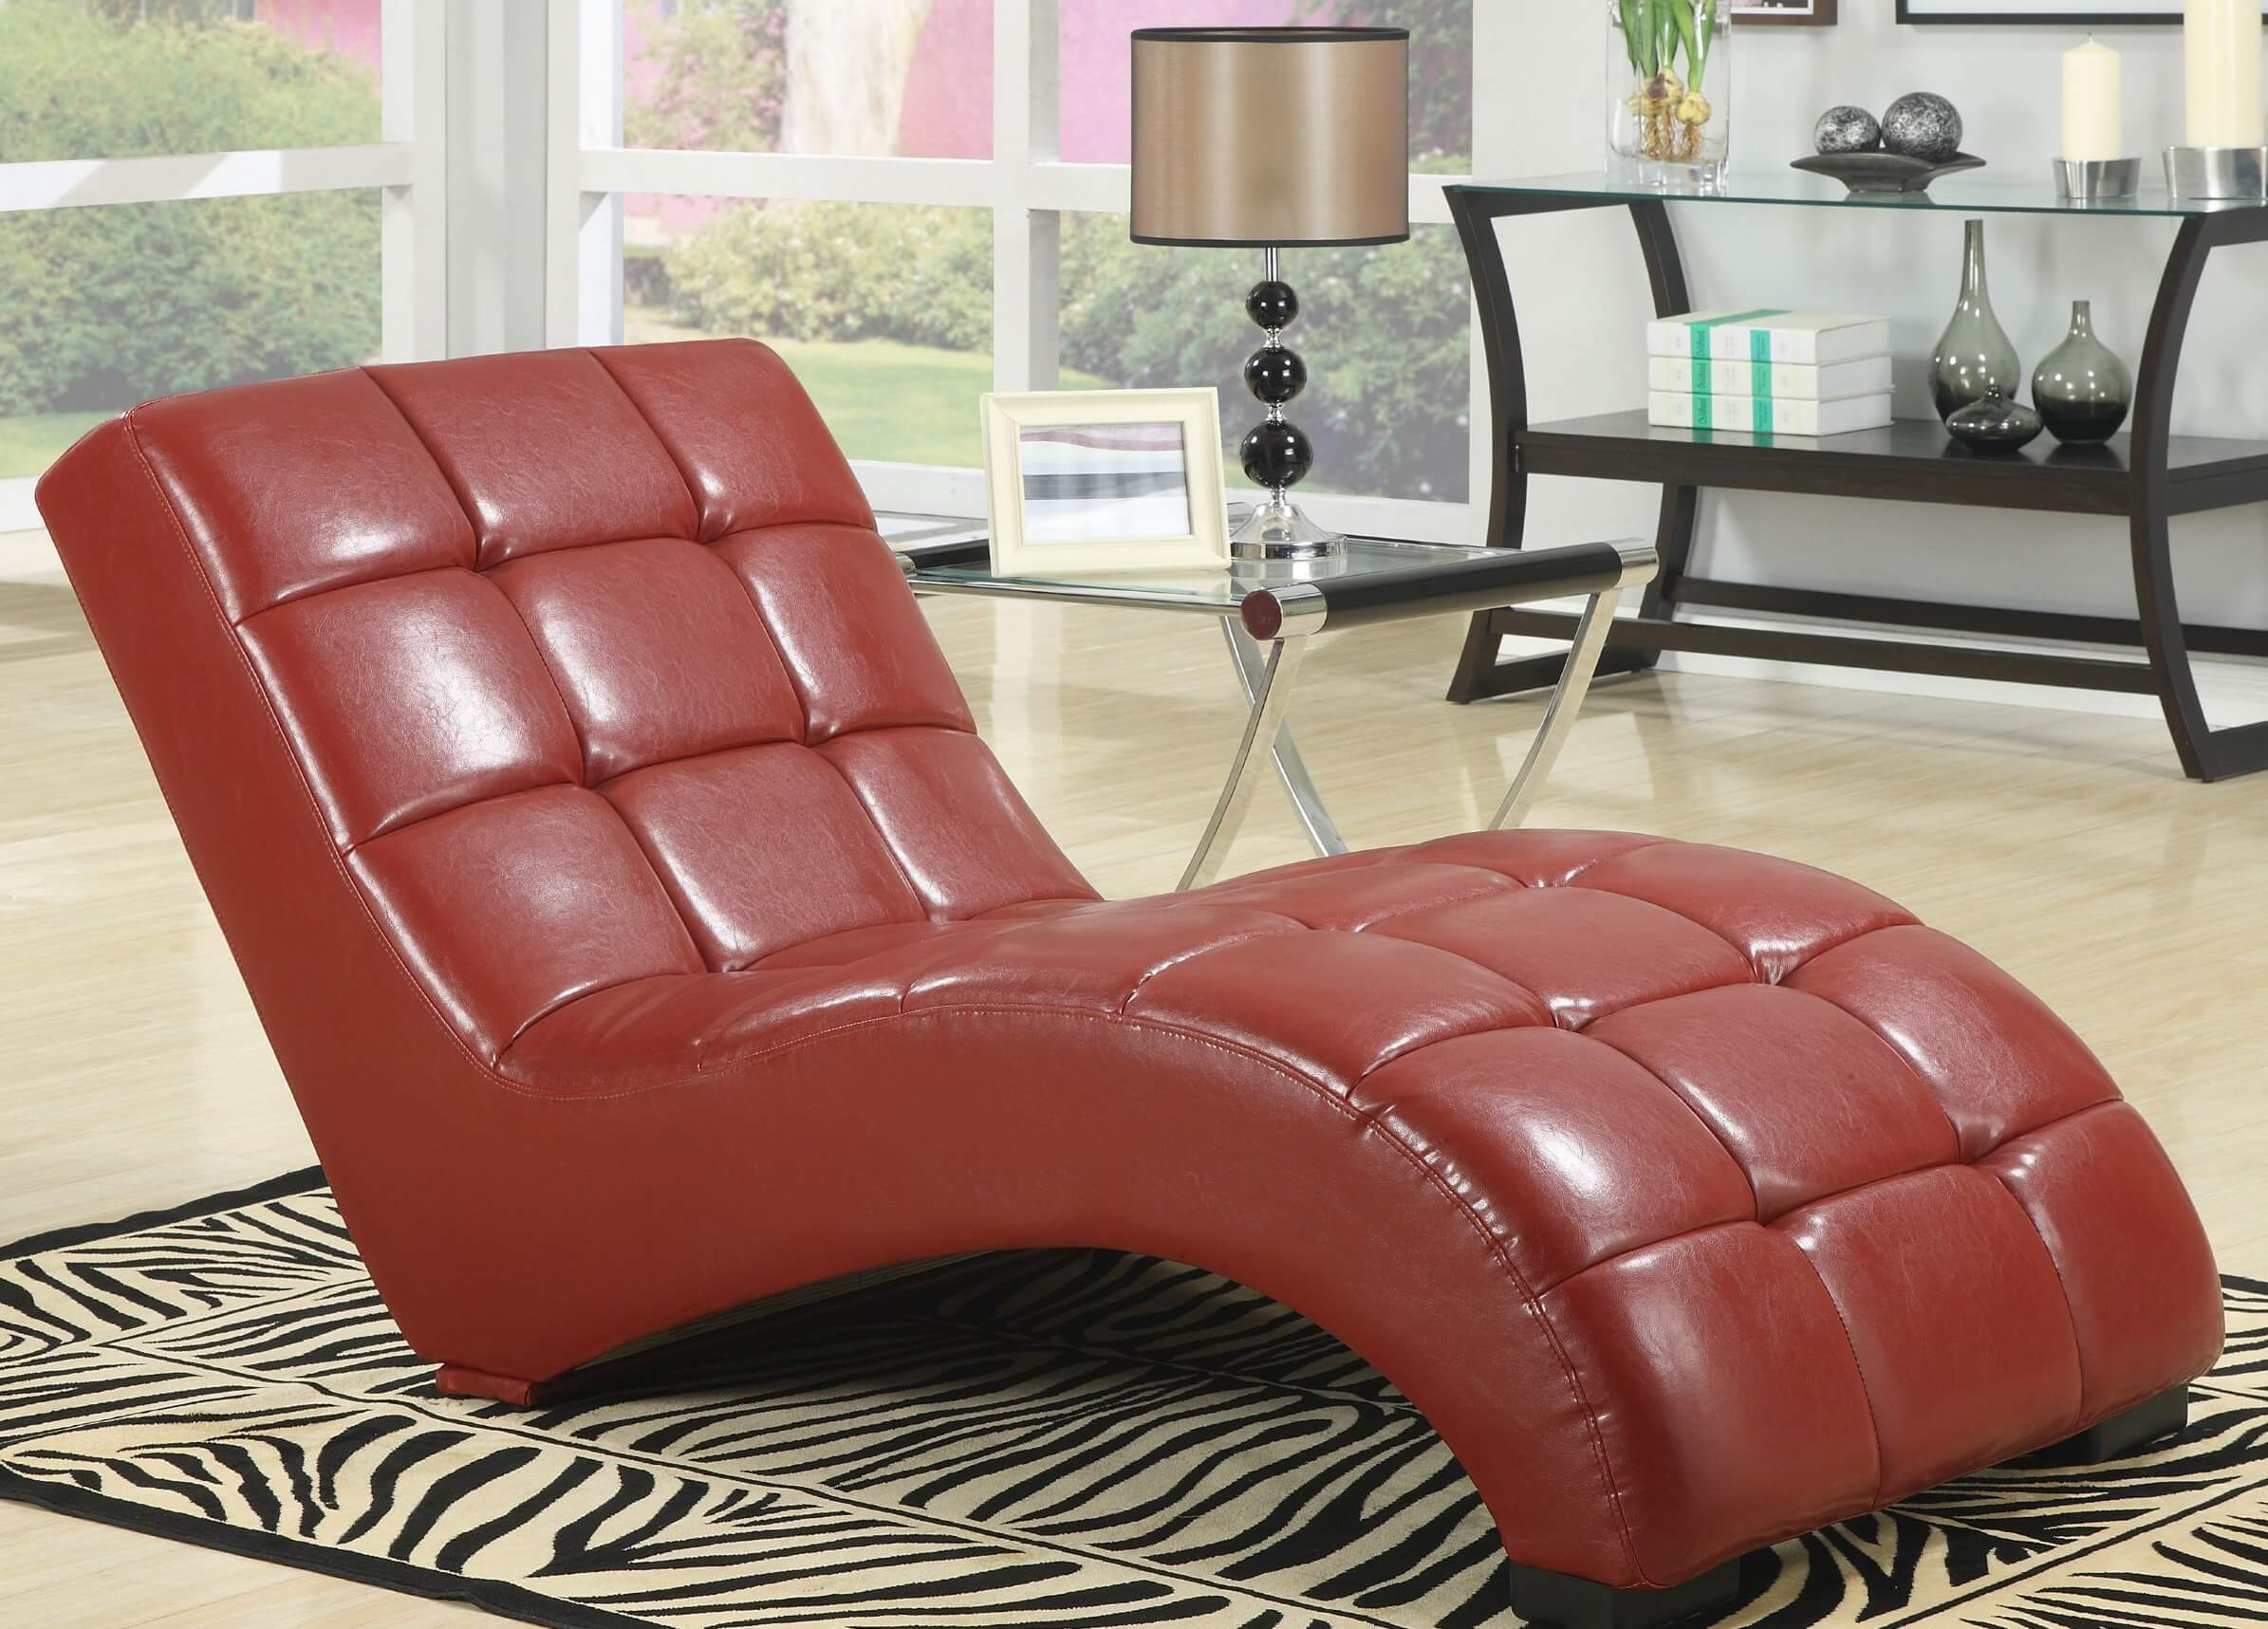 Similar to our top featured chair, this legless chaise fits rich leather over an arched frame. Button tufted thick cushioning ensures comfort, as does the low slung profile.